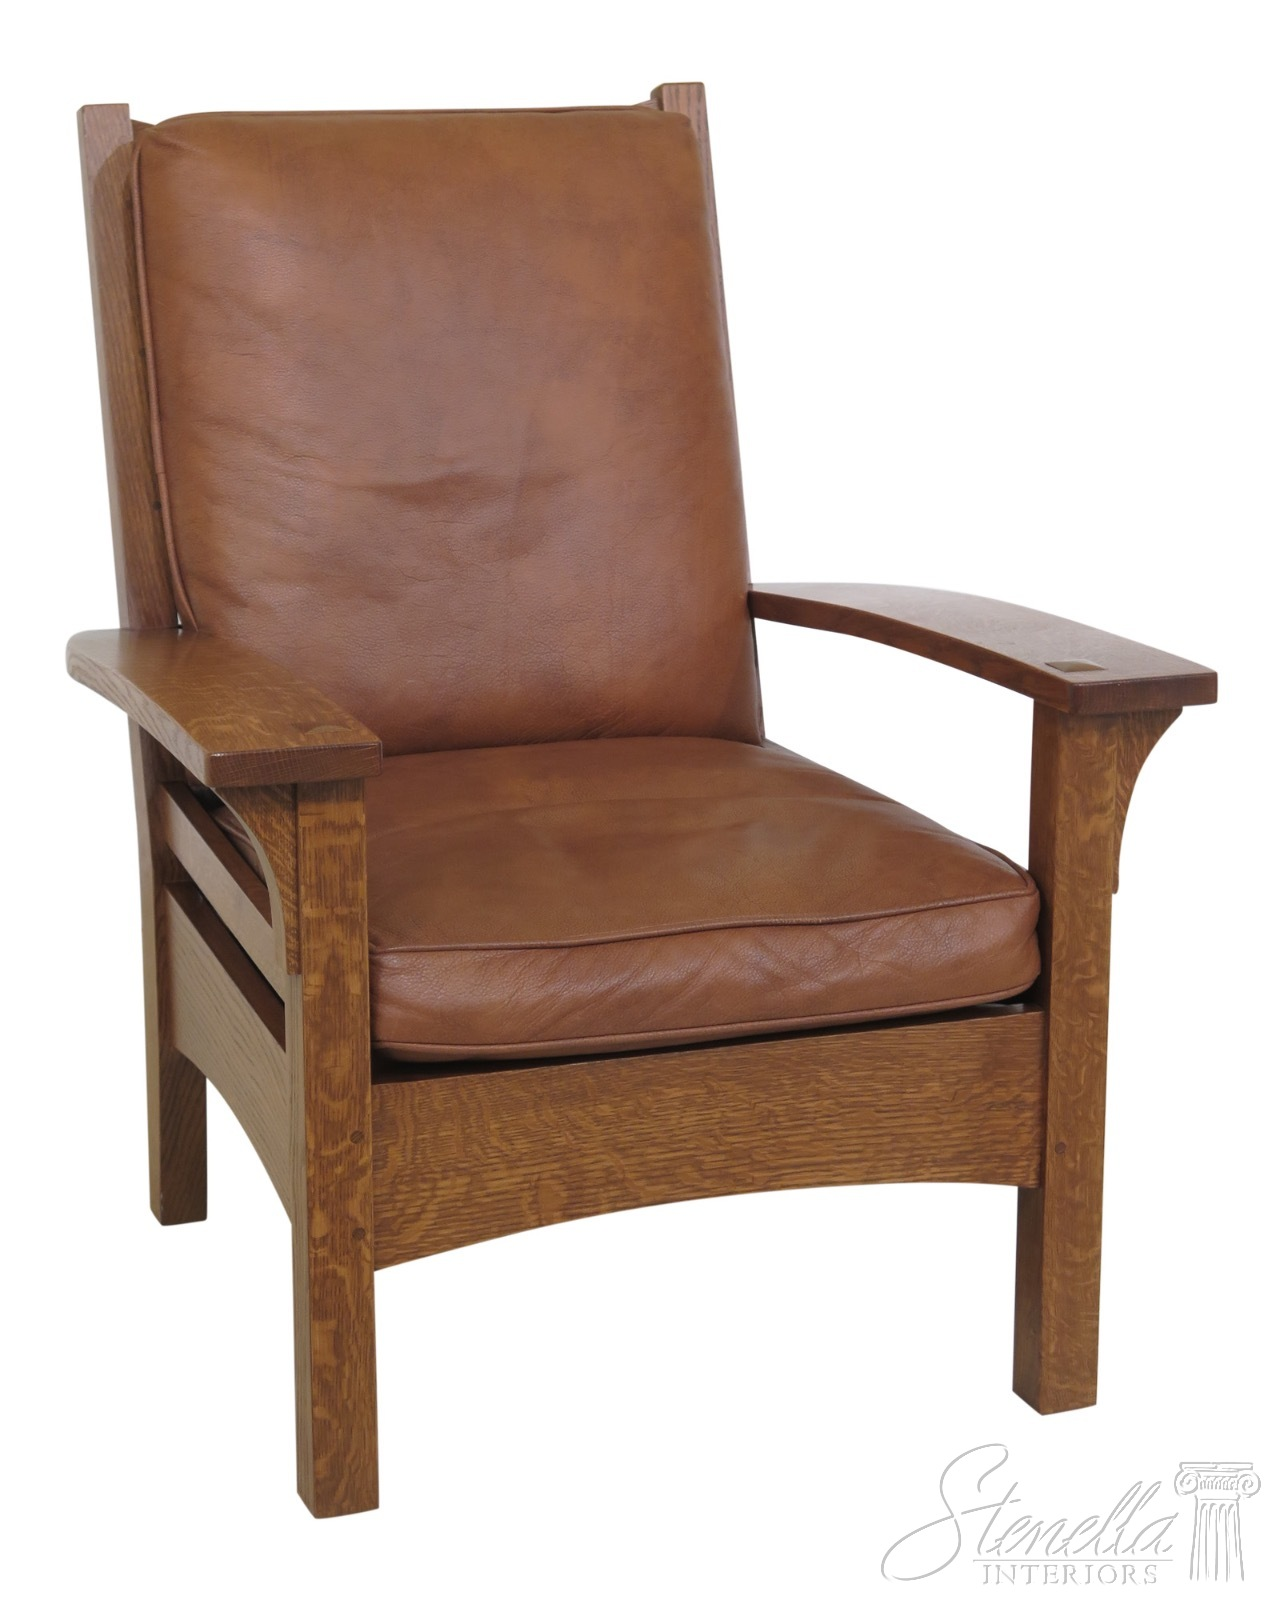 Leather Lounge Details About 30679ec Stickley Mission Oak Arts Crafts Leather Lounge Chair